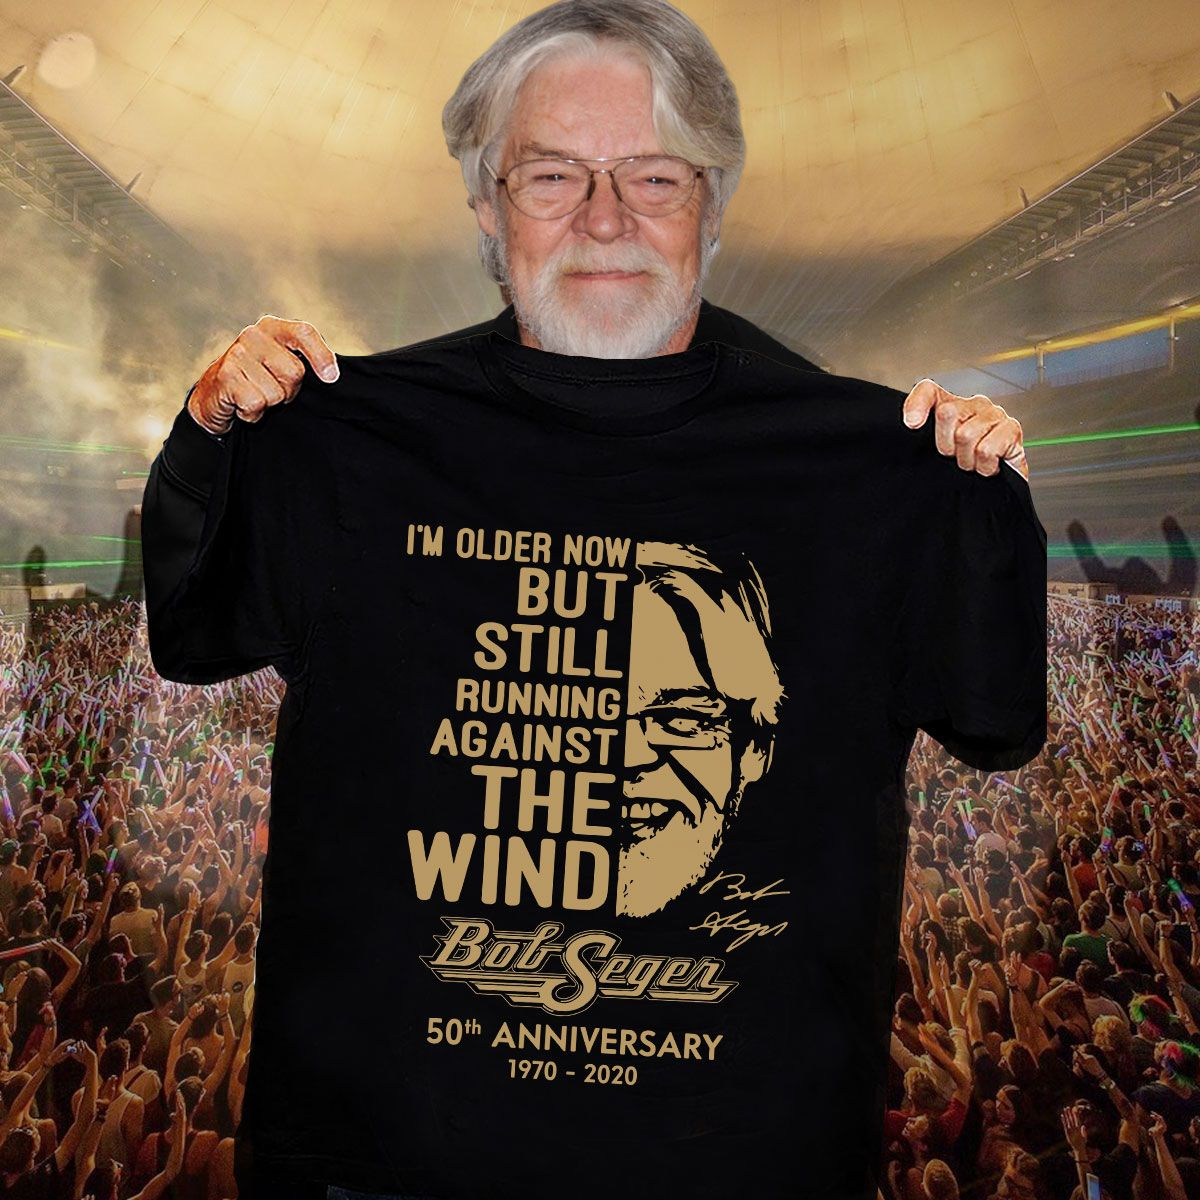 I'M Older Now But Still Running Against The Wind Bob Seger 50Th Anniversary 1970 2020 T Shirt Unisex T-shirt